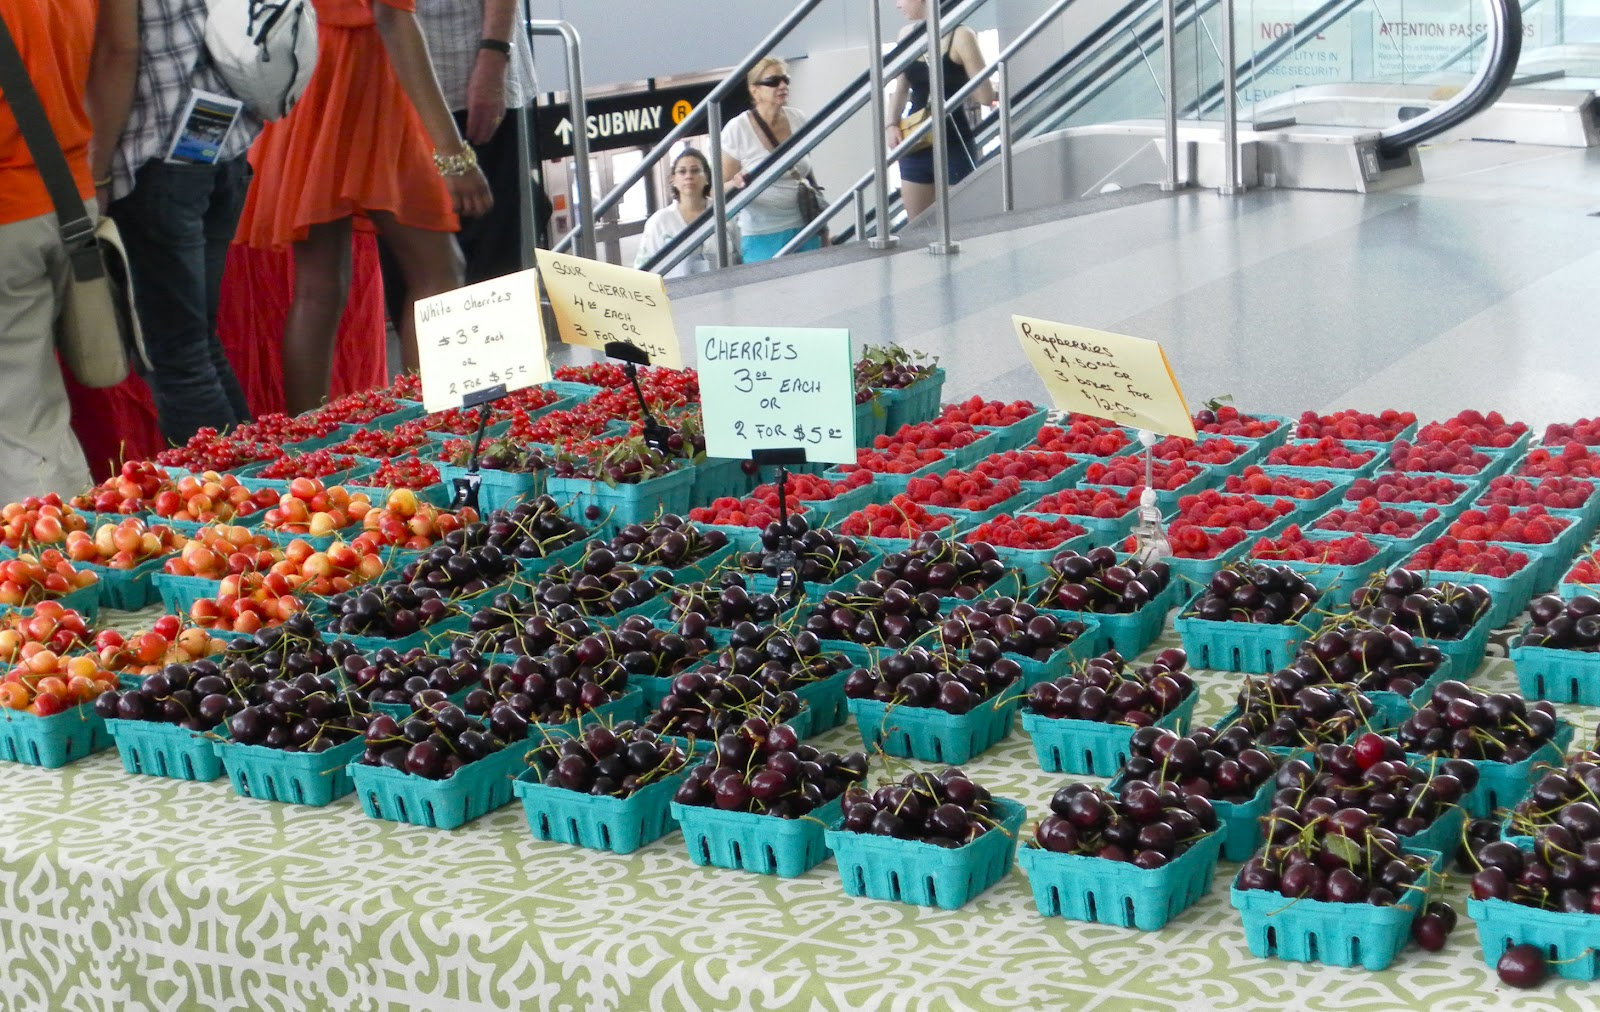 Saturdays with Maggy: Sustainable Sunday: NYC Farmer's Markets